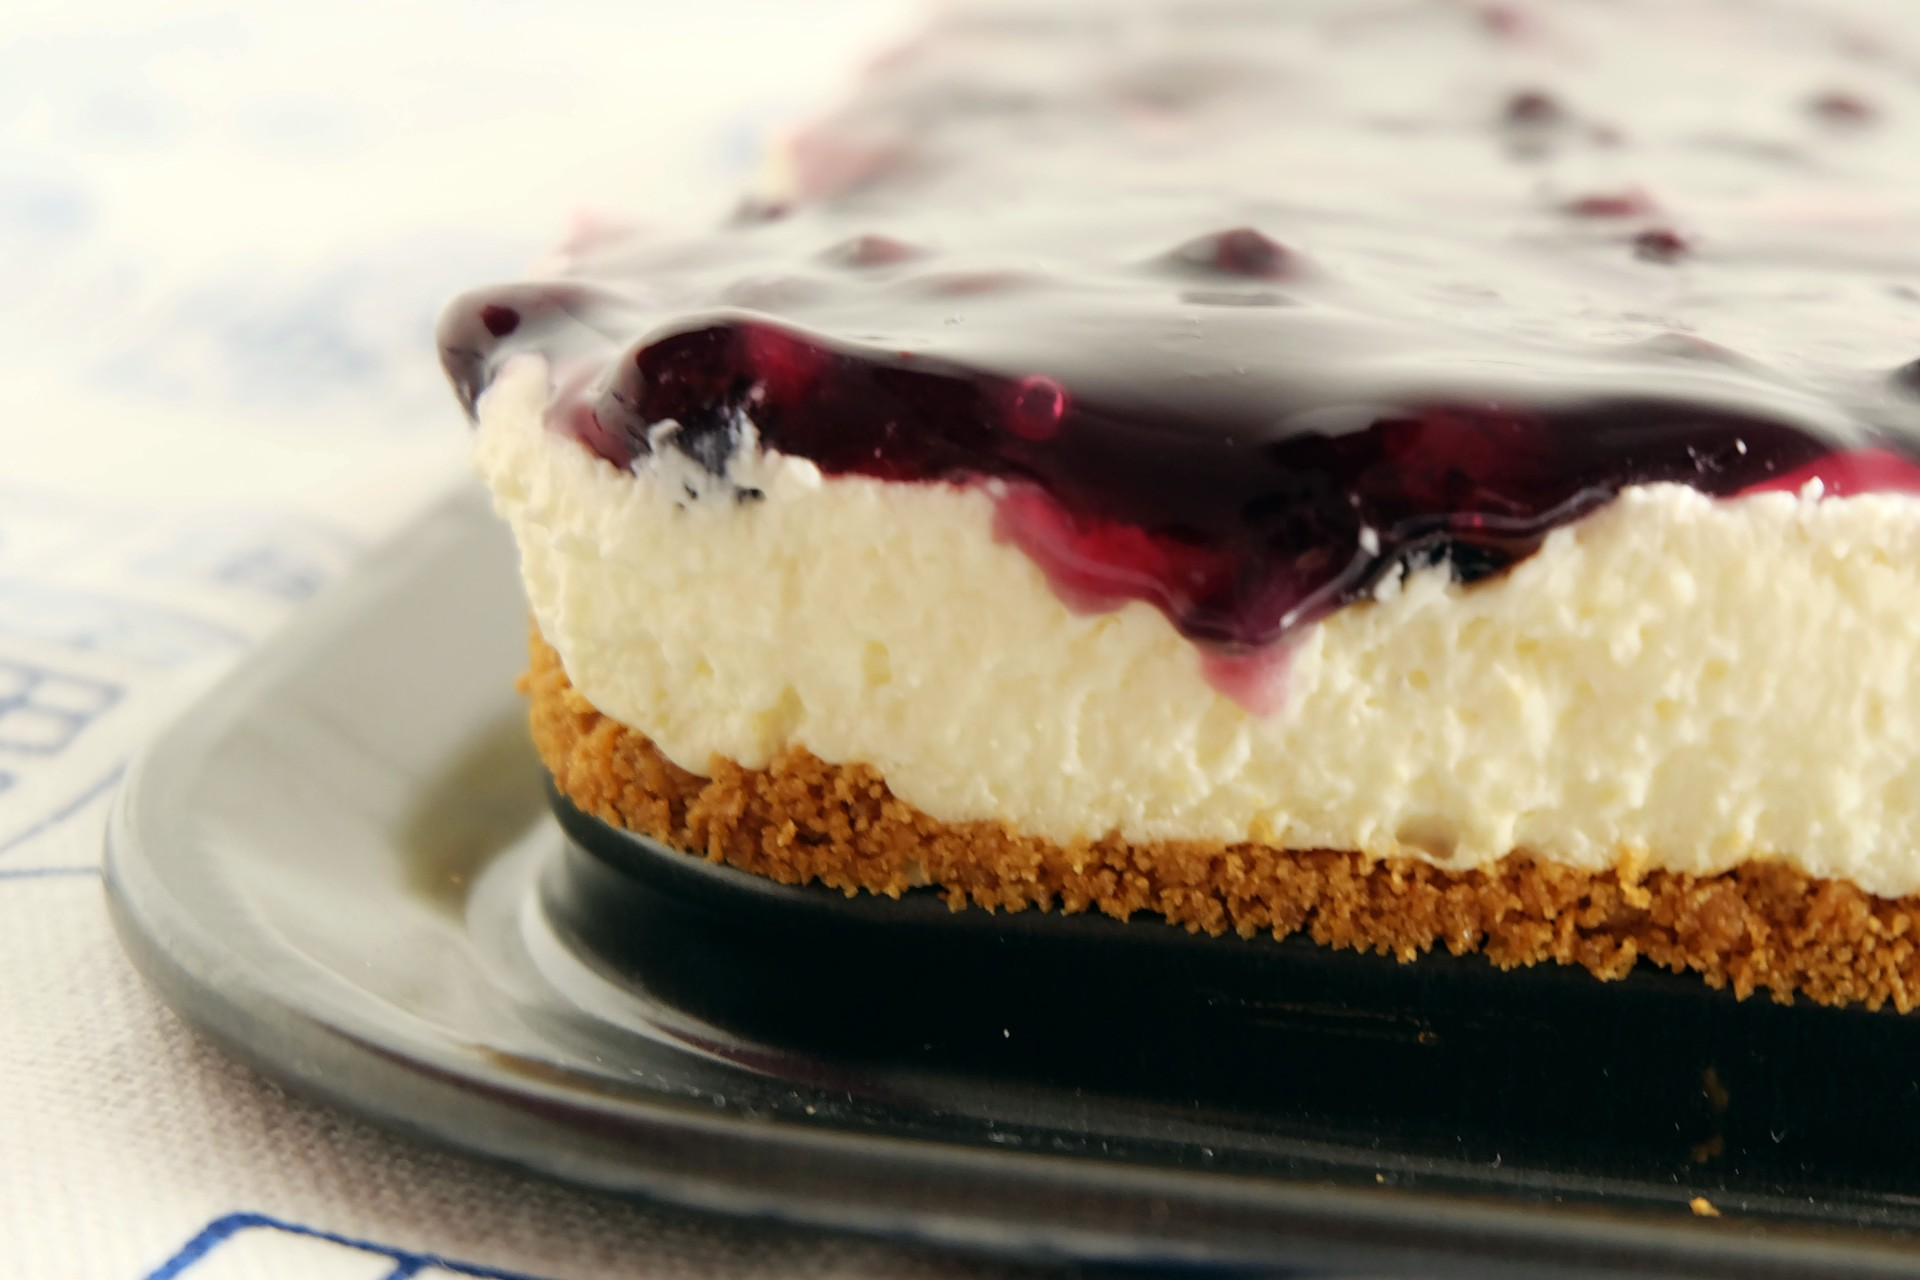 Blueberry Cheesecake by Rice N Dine